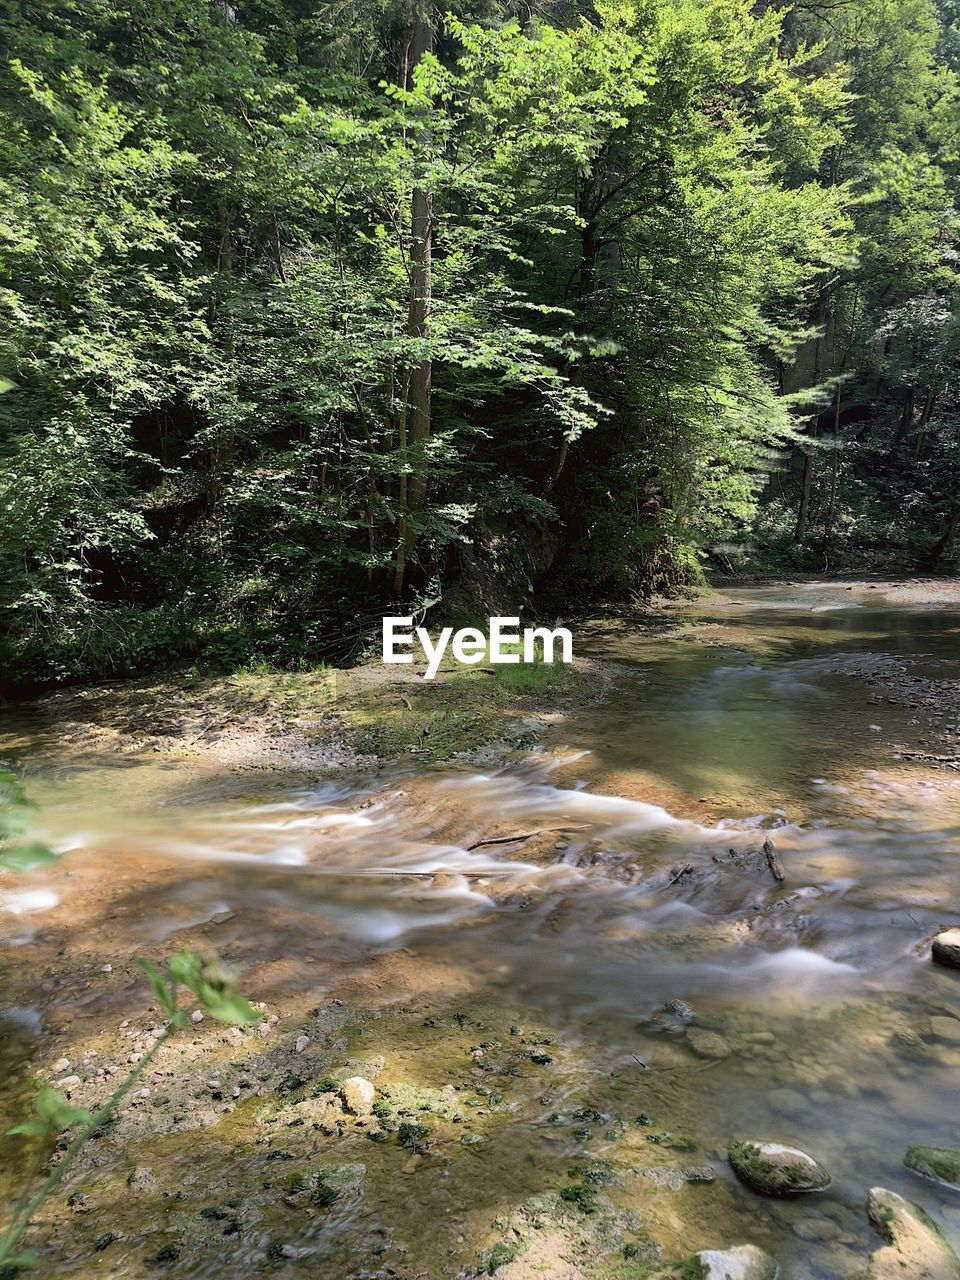 water, tree, forest, plant, nature, motion, no people, beauty in nature, land, day, flowing water, tranquility, scenics - nature, blurred motion, non-urban scene, river, growth, outdoors, tranquil scene, flowing, stream - flowing water, shallow